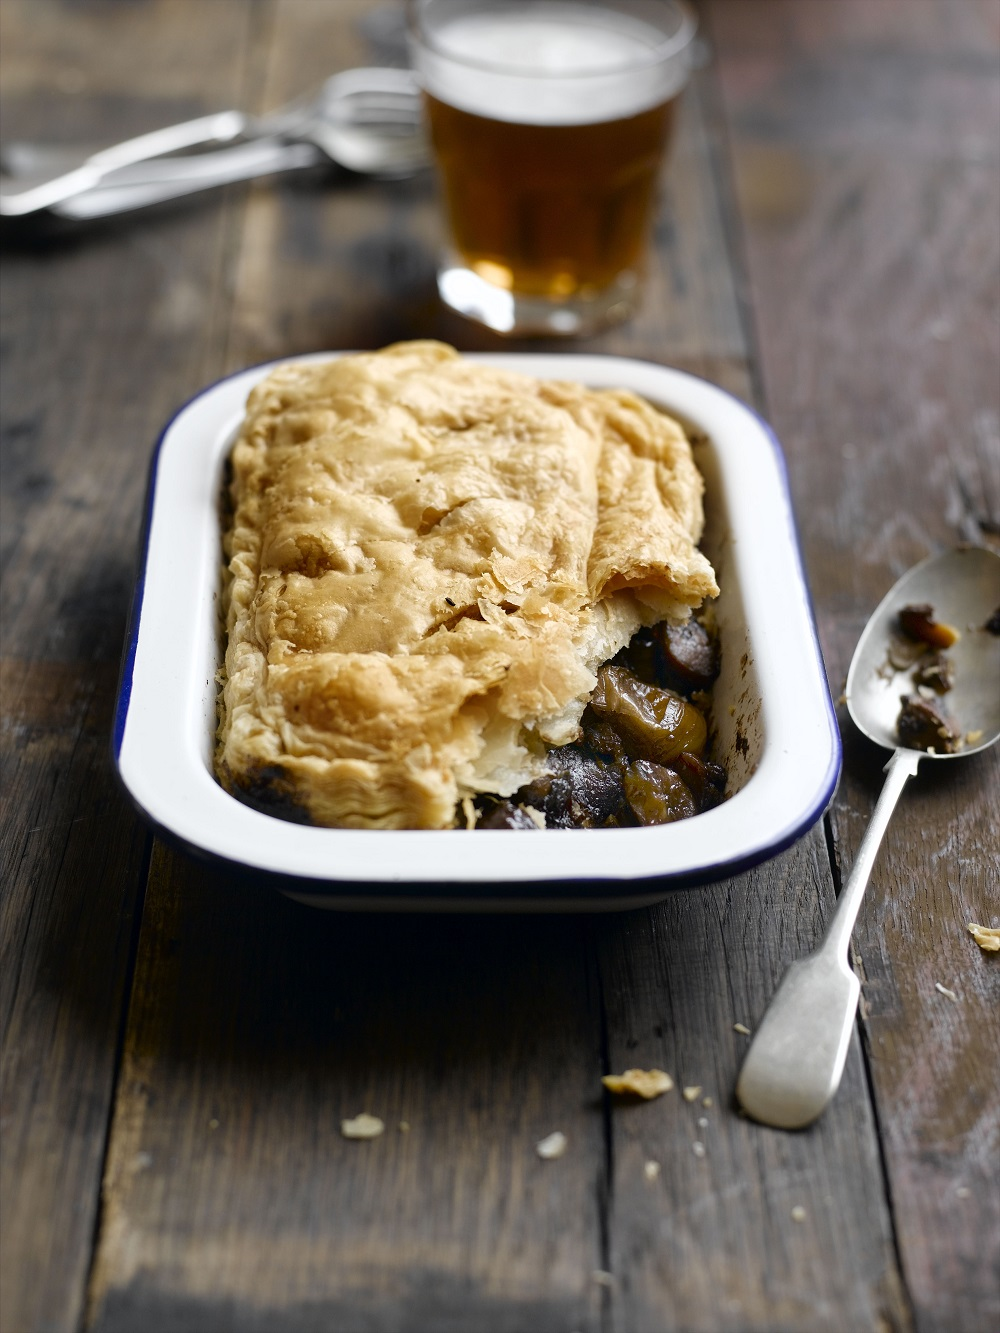 How To Make A Chestnut, Mushroom And Shallot Pie